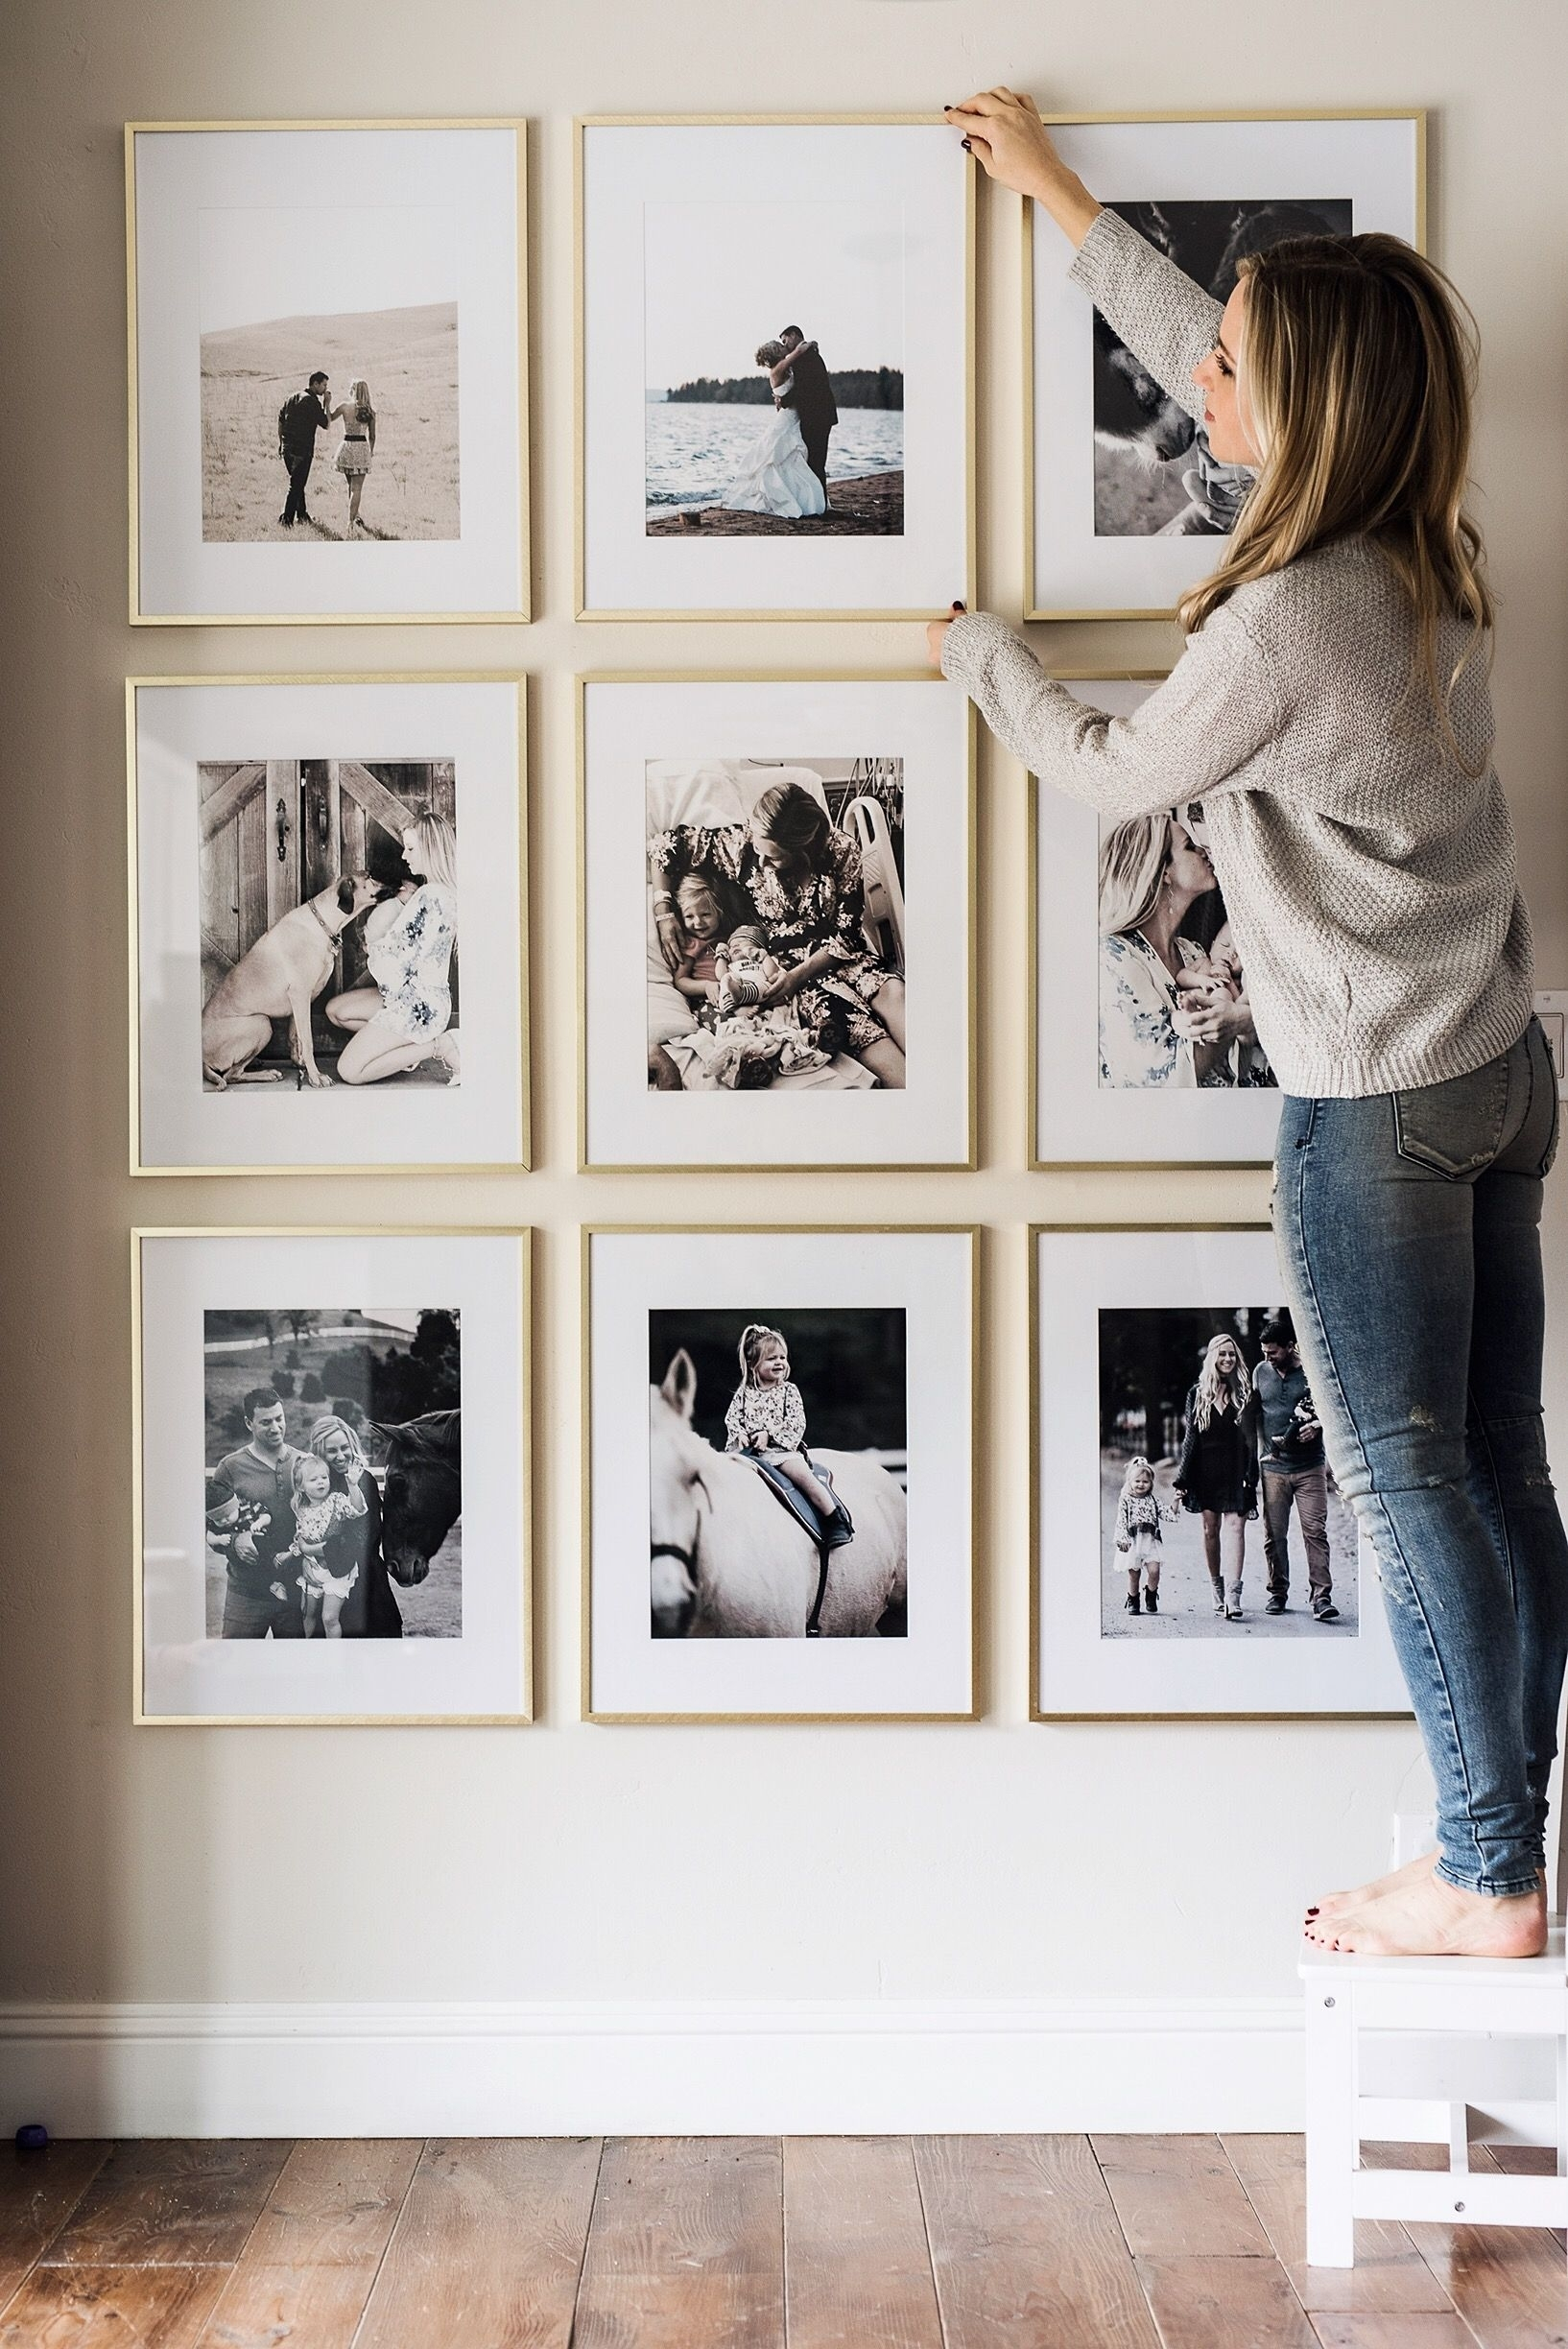 Picture Frame Wall | Beautiful Space, Budgeting And Spaces Throughout Most Recently Released Frames Wall Accents (View 3 of 15)